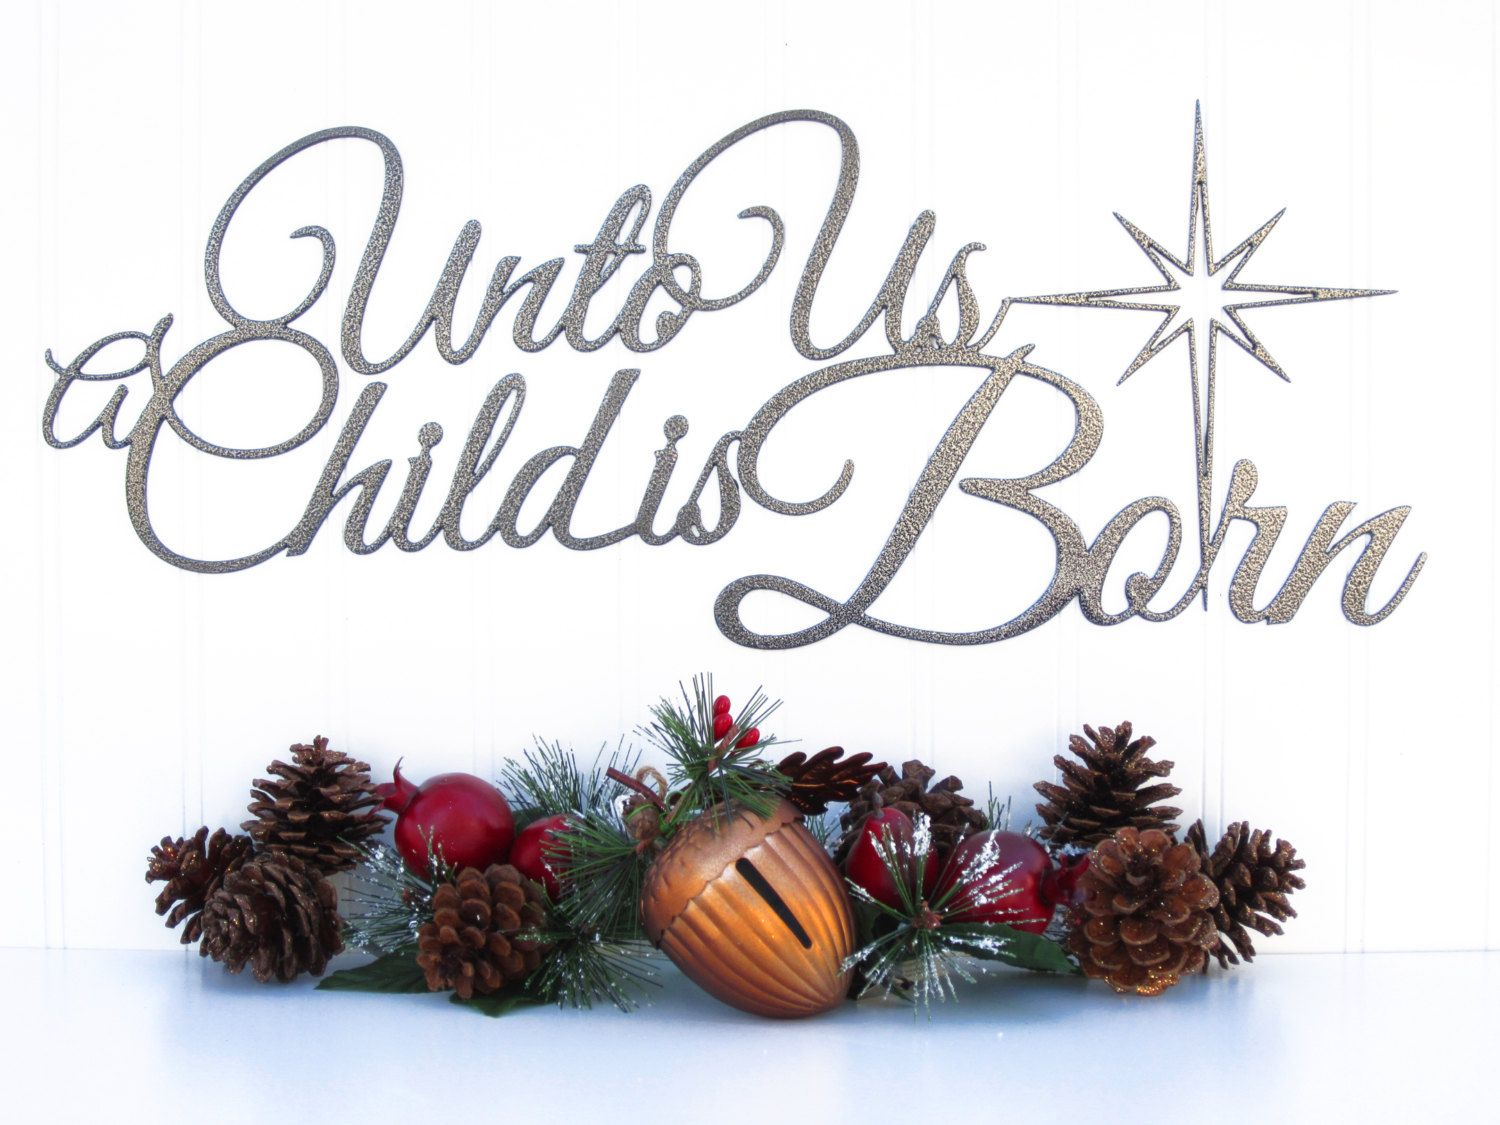 Unto Us A Child Is Born Christmas Metal Sign - Silver, 19.5x8 ...